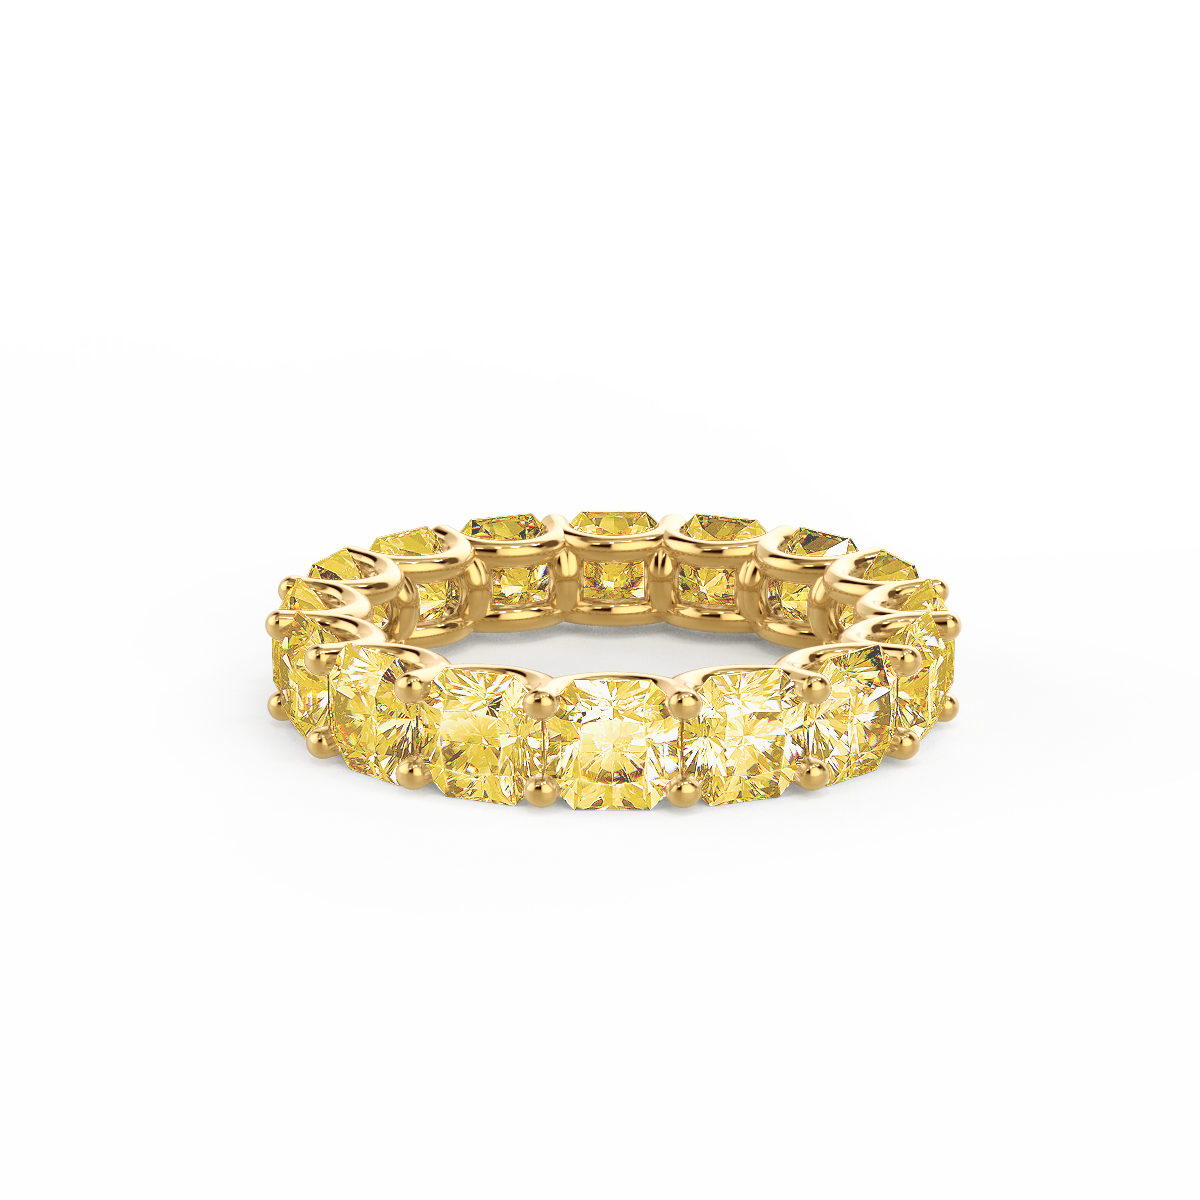 Ada's French U Radiant Eternity Band featuring yellow diamonds in yellow gold